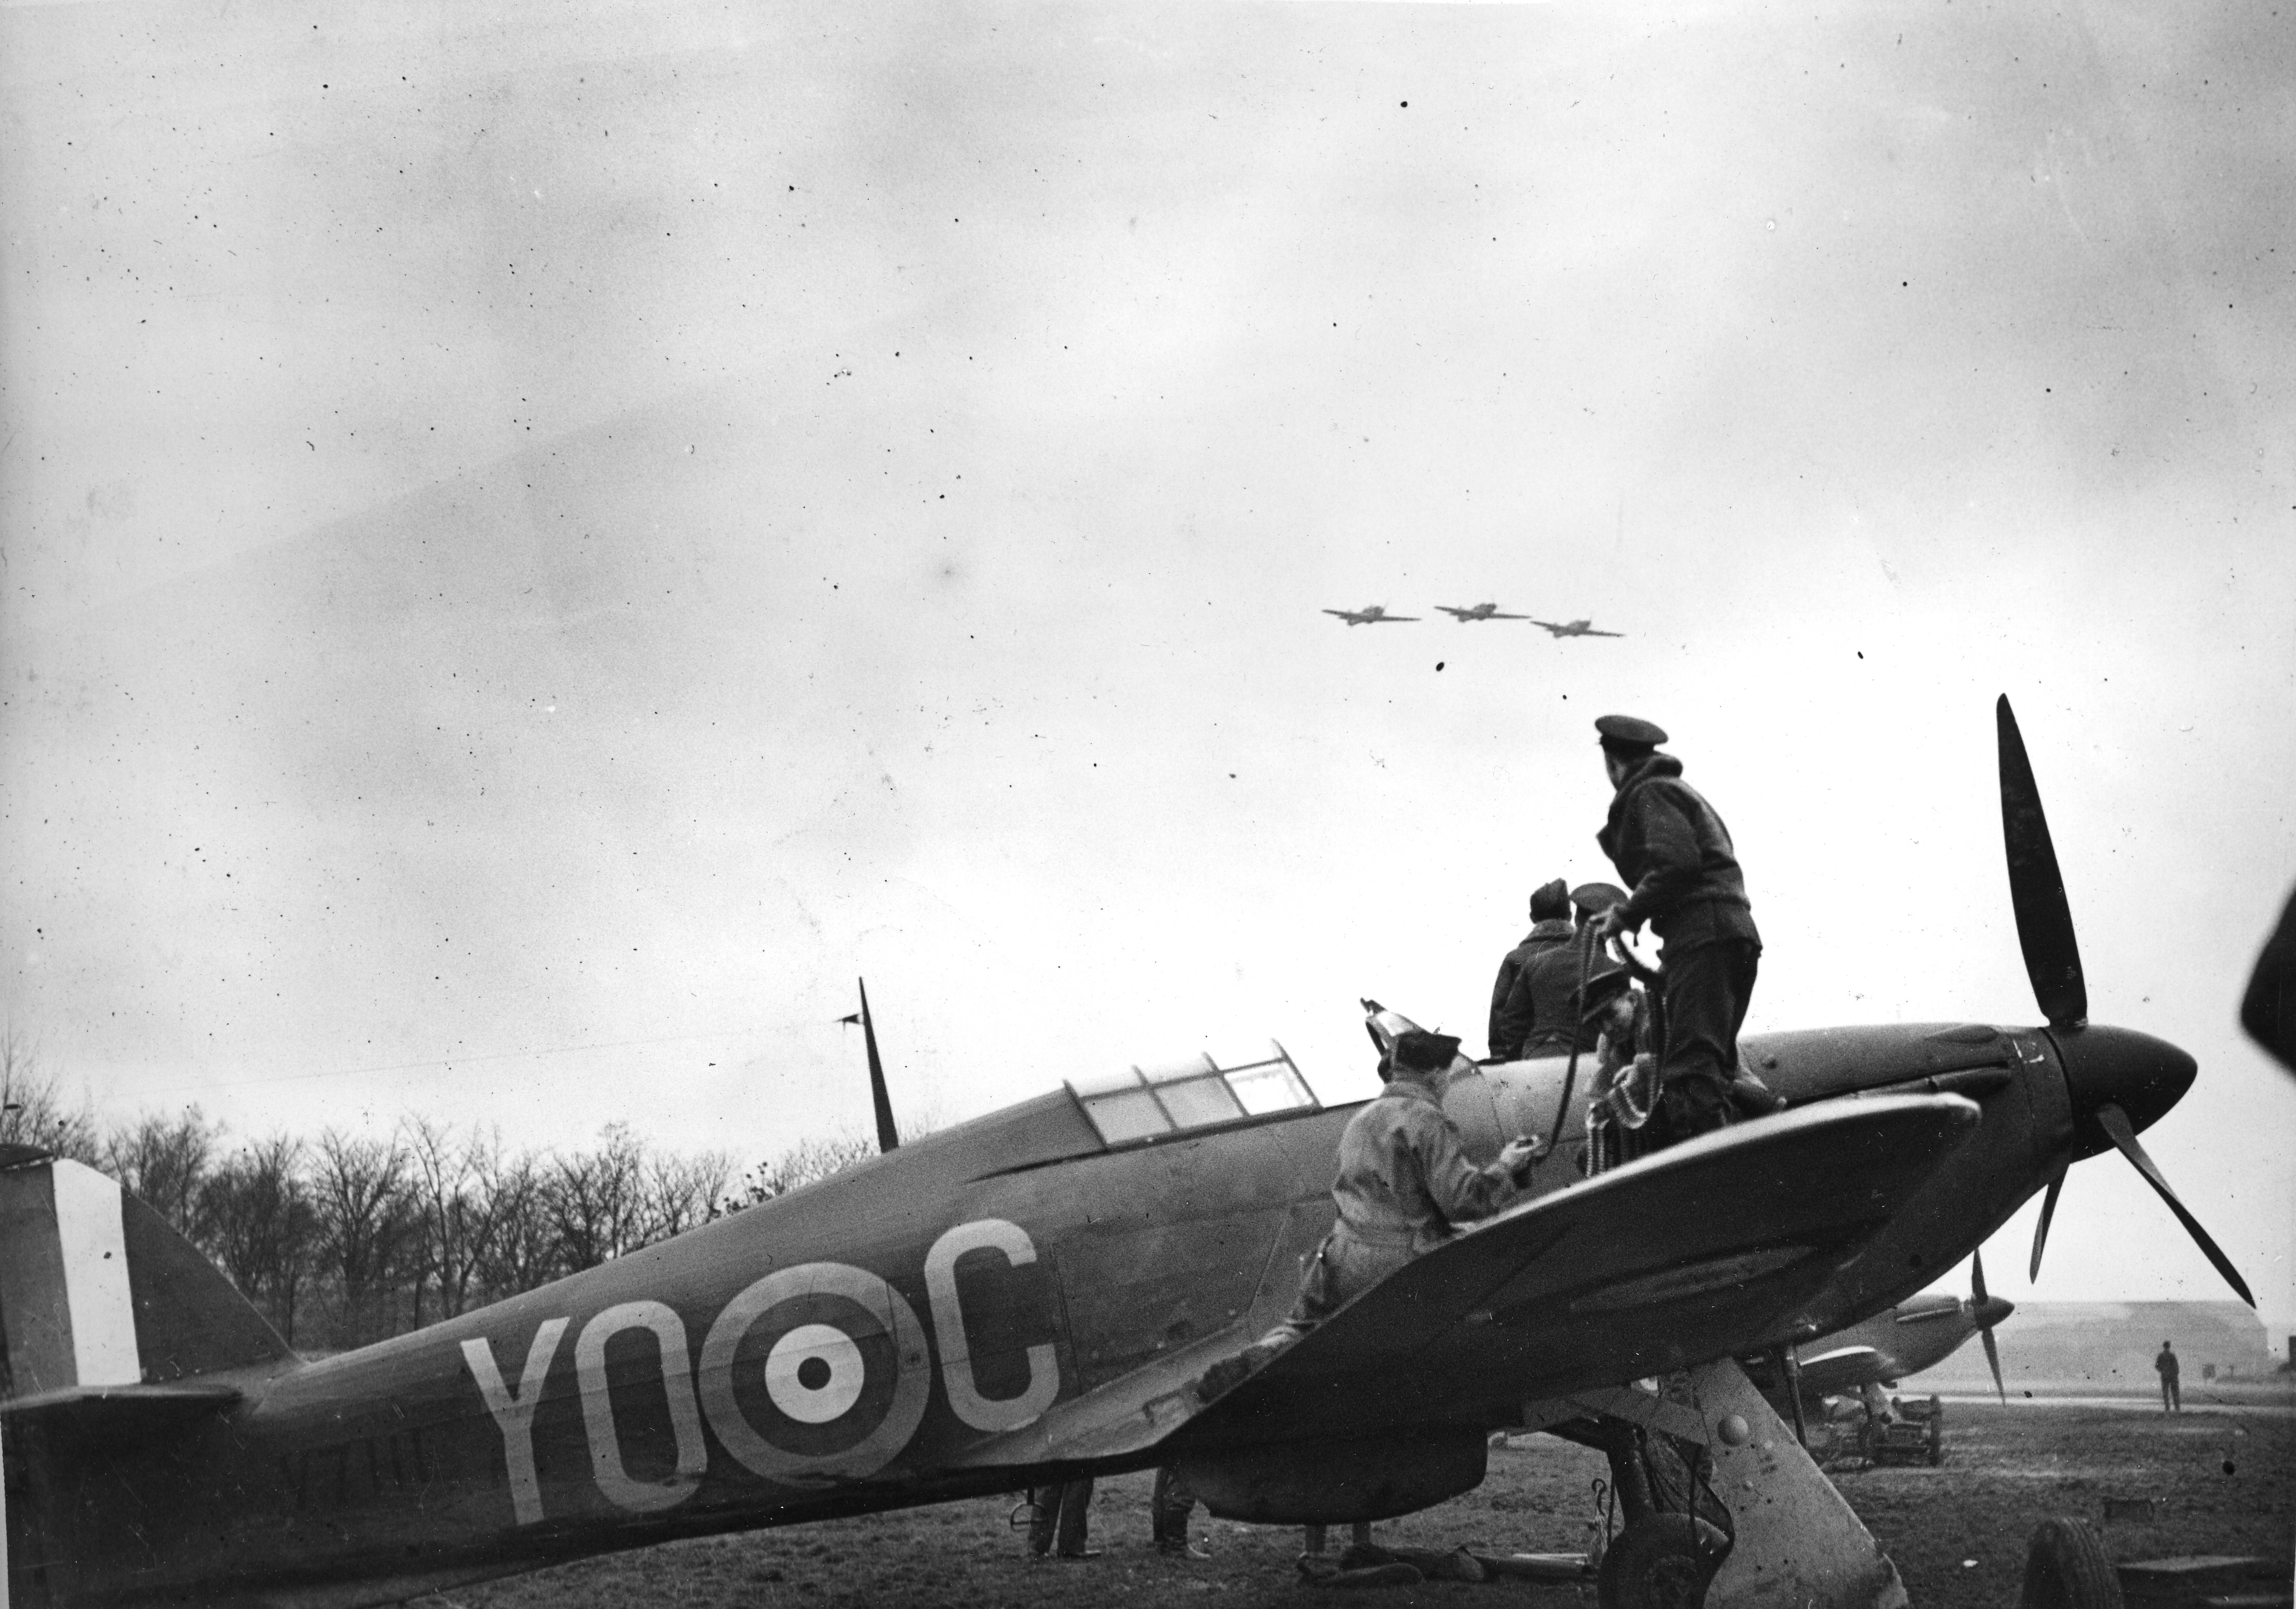 A Hurricane is re-armed while a section flies overhead. From the photo album of Flying Officer R.W.G. Norris, from Saskatoon, Saskatchewan, who served with No. 1 Squadron during the Battle of Britain.